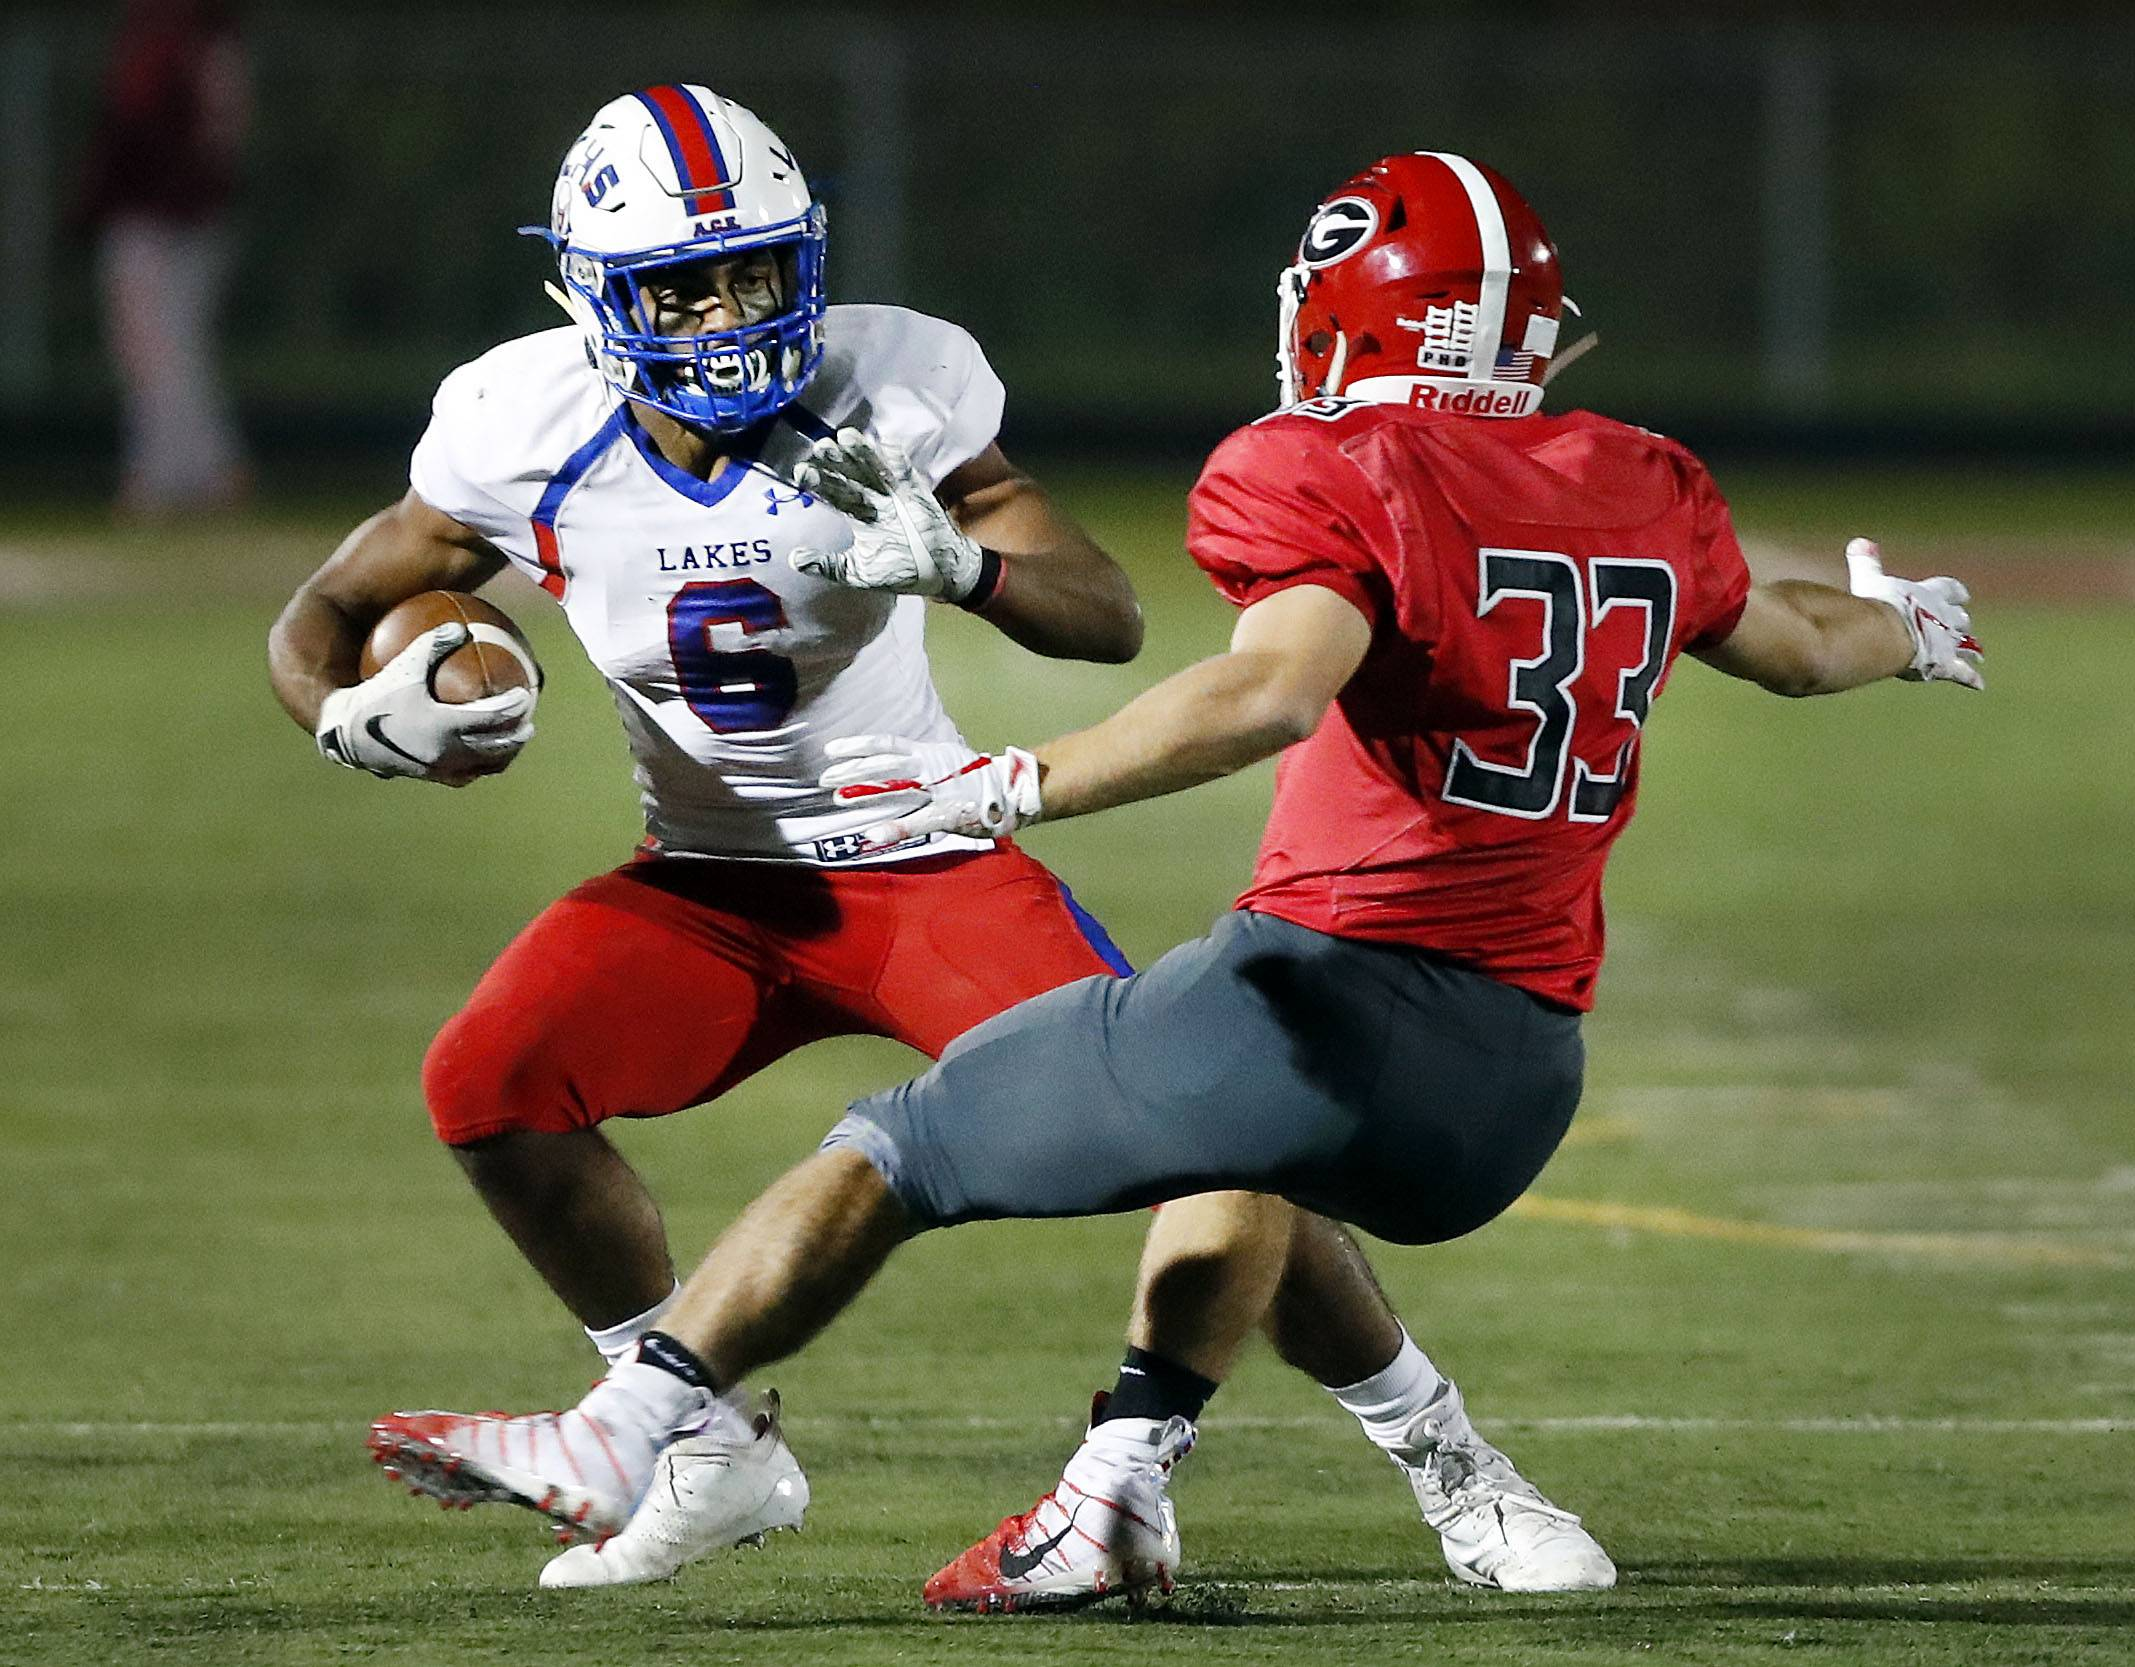 Images: Lakes over Grant, 42-19 in Week 6 football